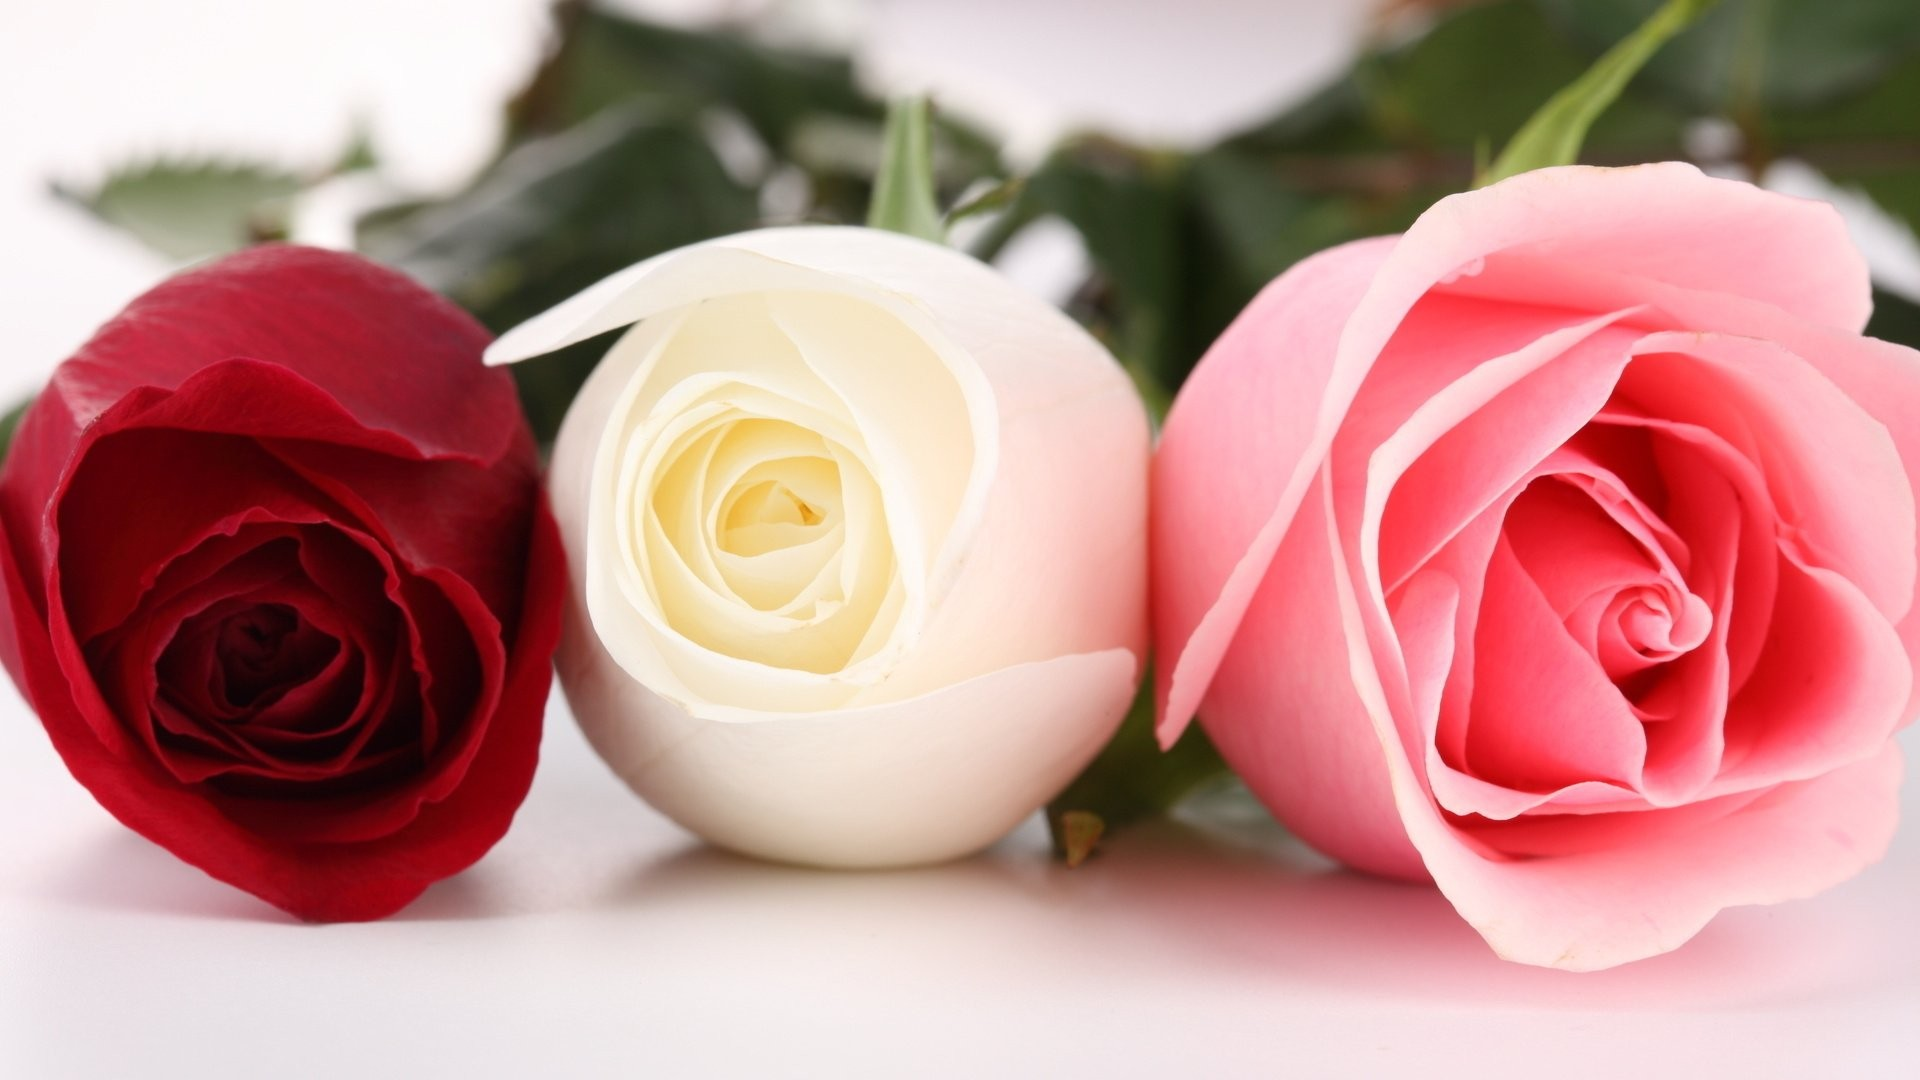 Women's Day Roses hd image download